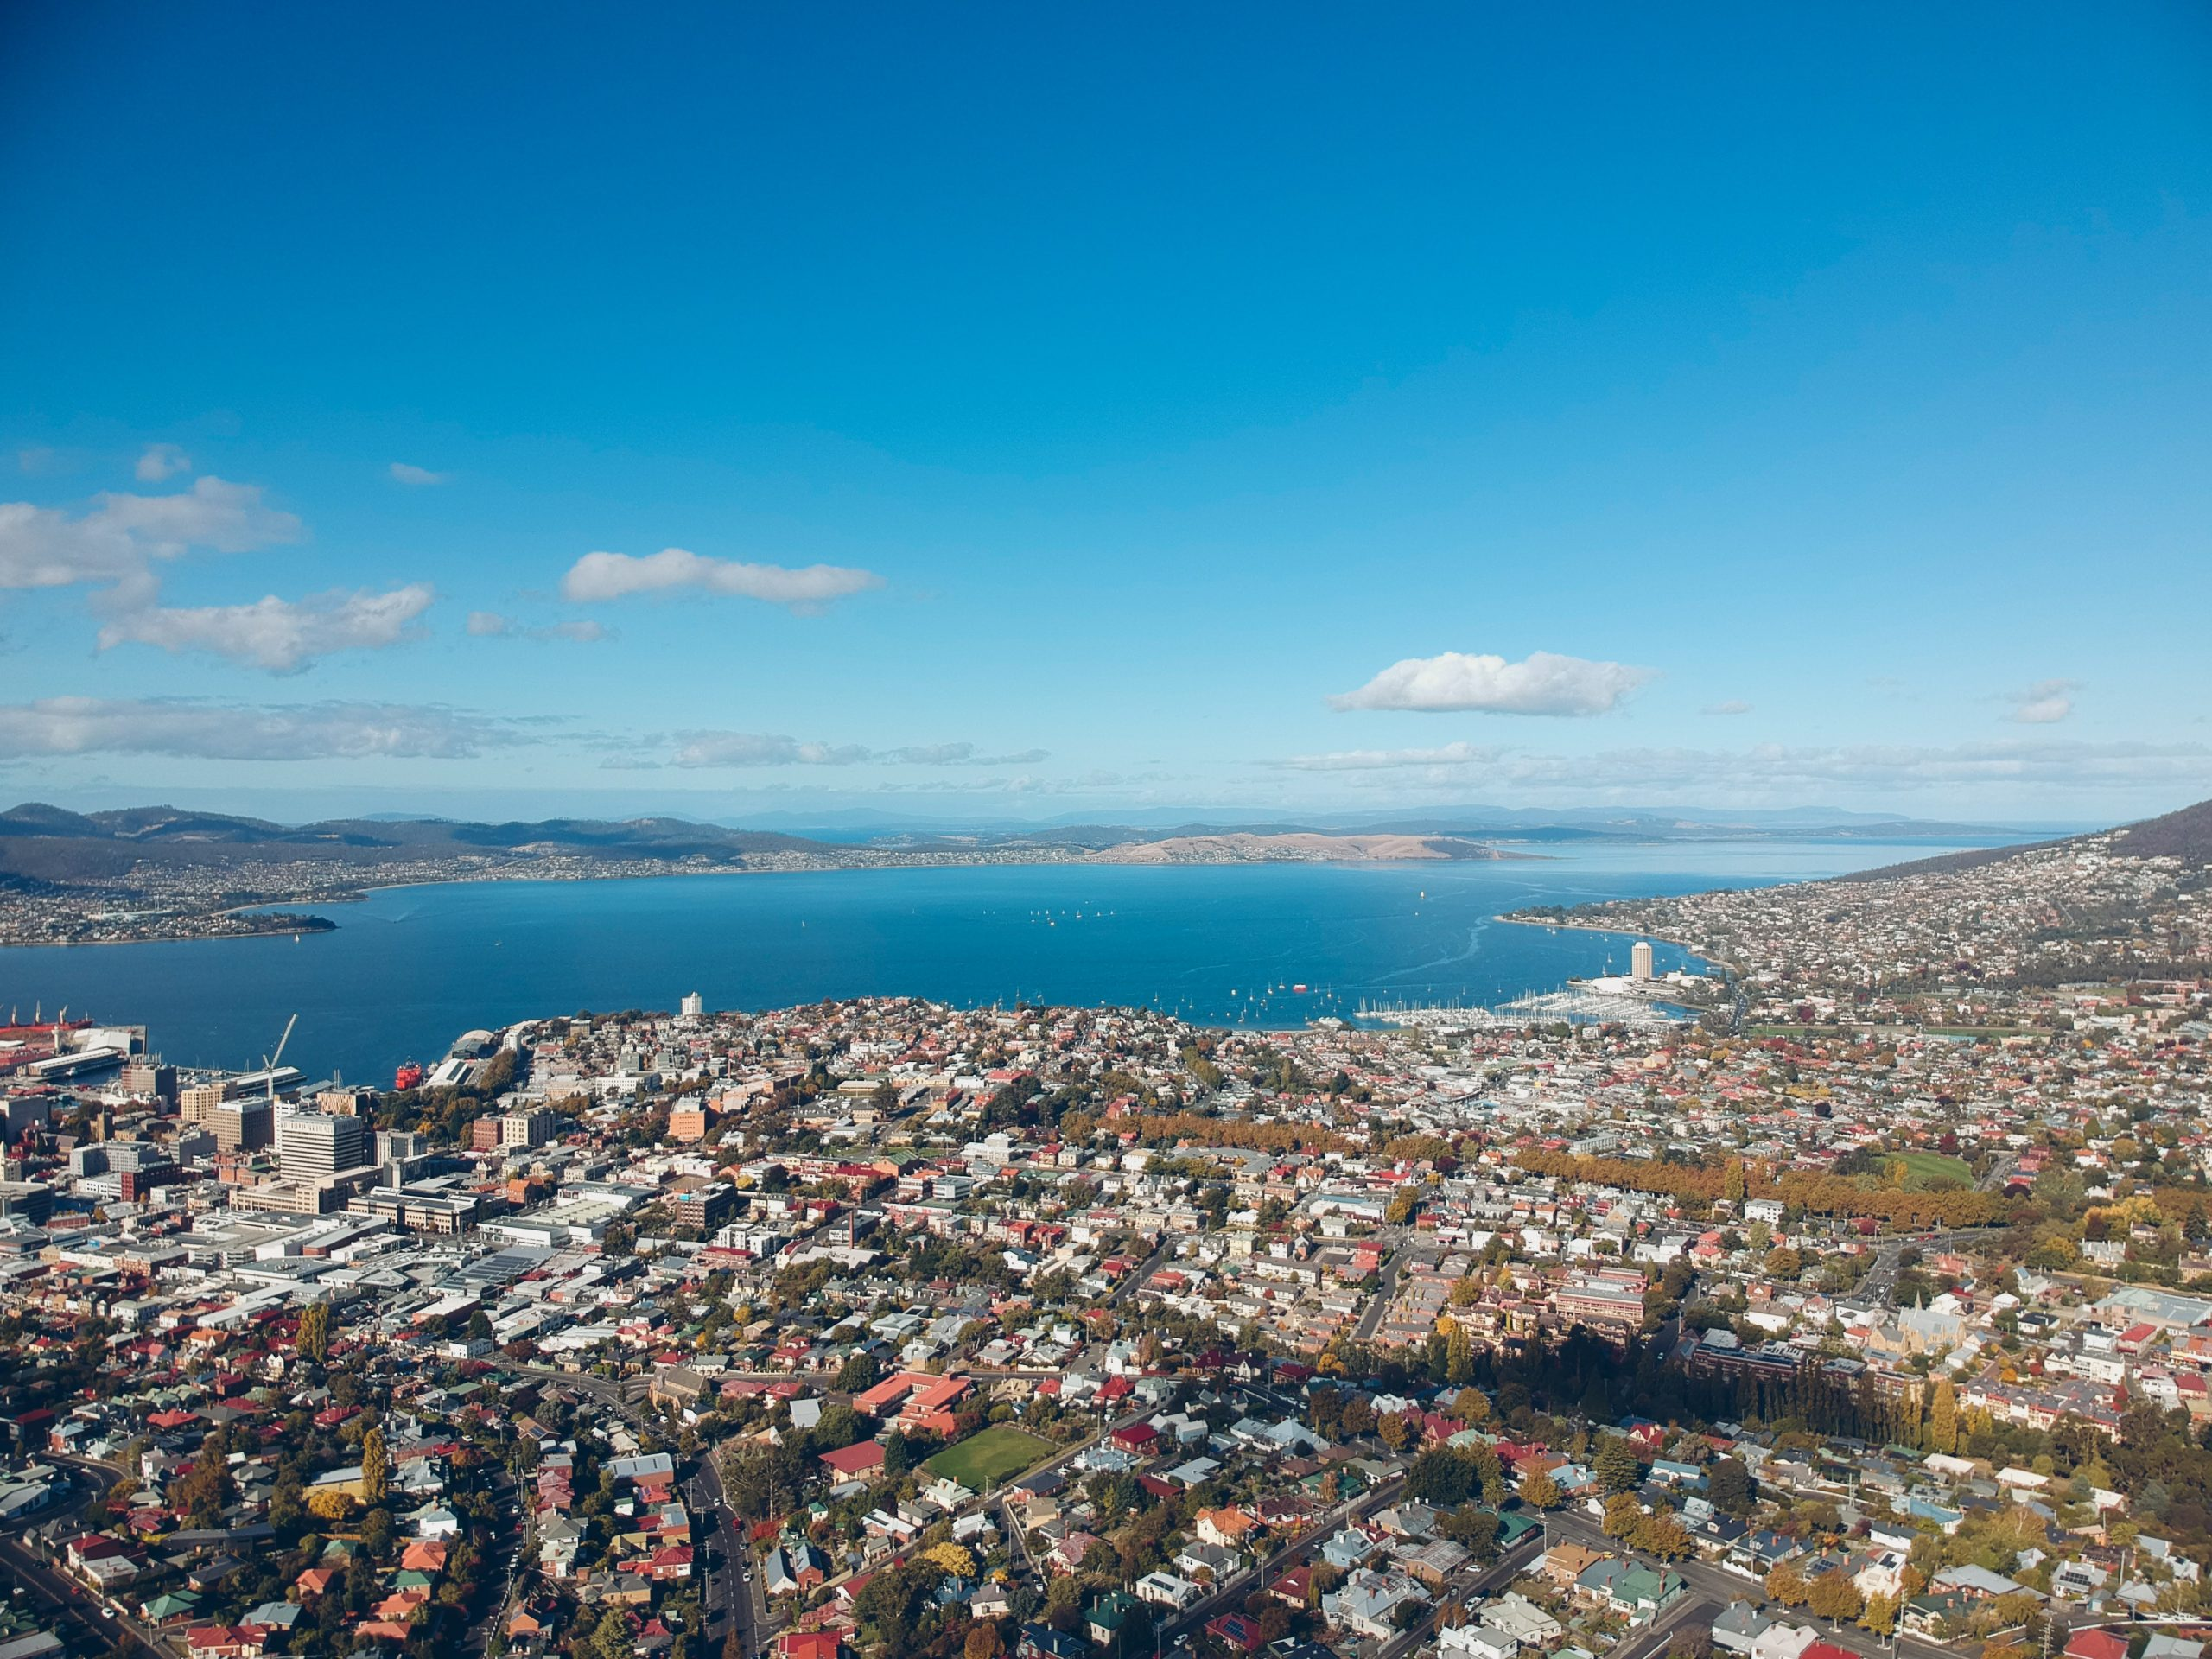 Aerial view of the city and all the things to do in Hobart by the water